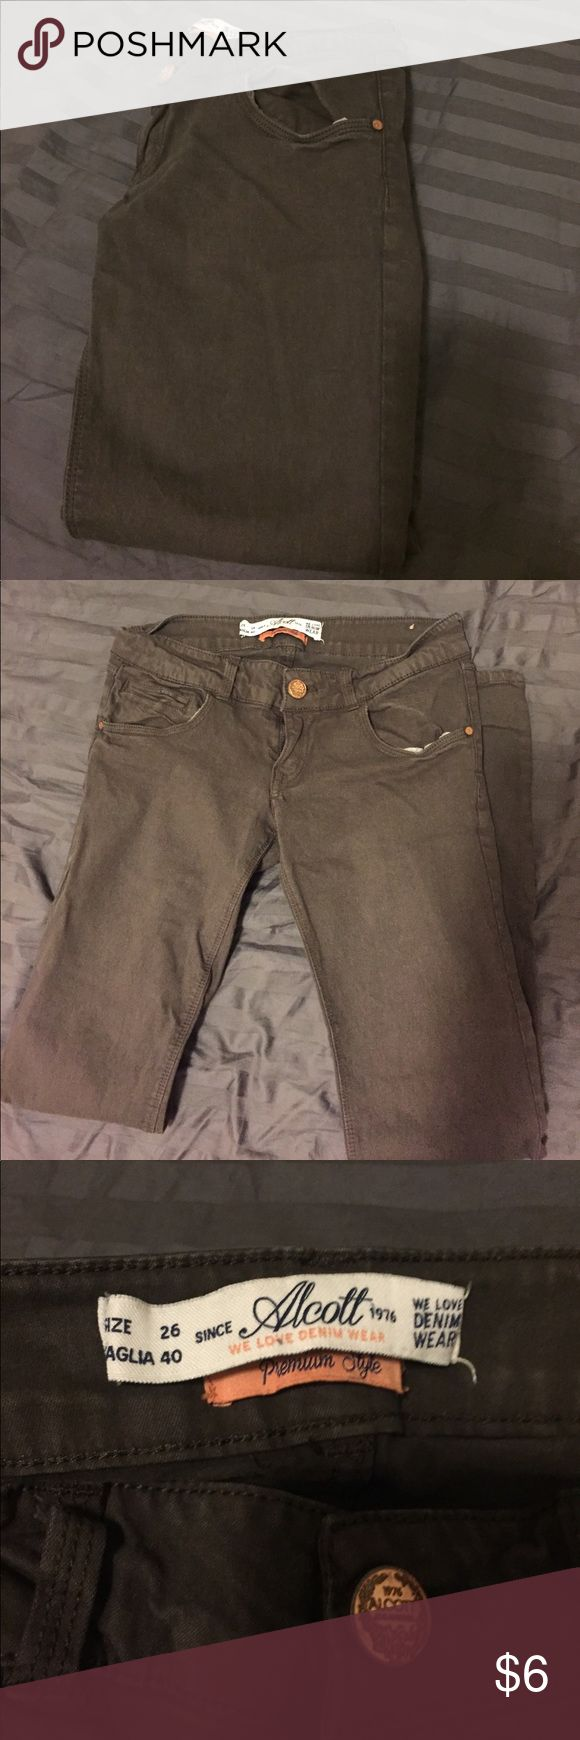 Alcott Brown Skinny Jeans Brown skinny jeans from European brand Alcott! Got these in Italy but they no longer fit 😔 They're skinny fit,  chocolate brown in color. EU size 26 (US 2-3). ✨✨OFFERS/TRADES WELCOME✨✨ Alcott Jeans Skinny